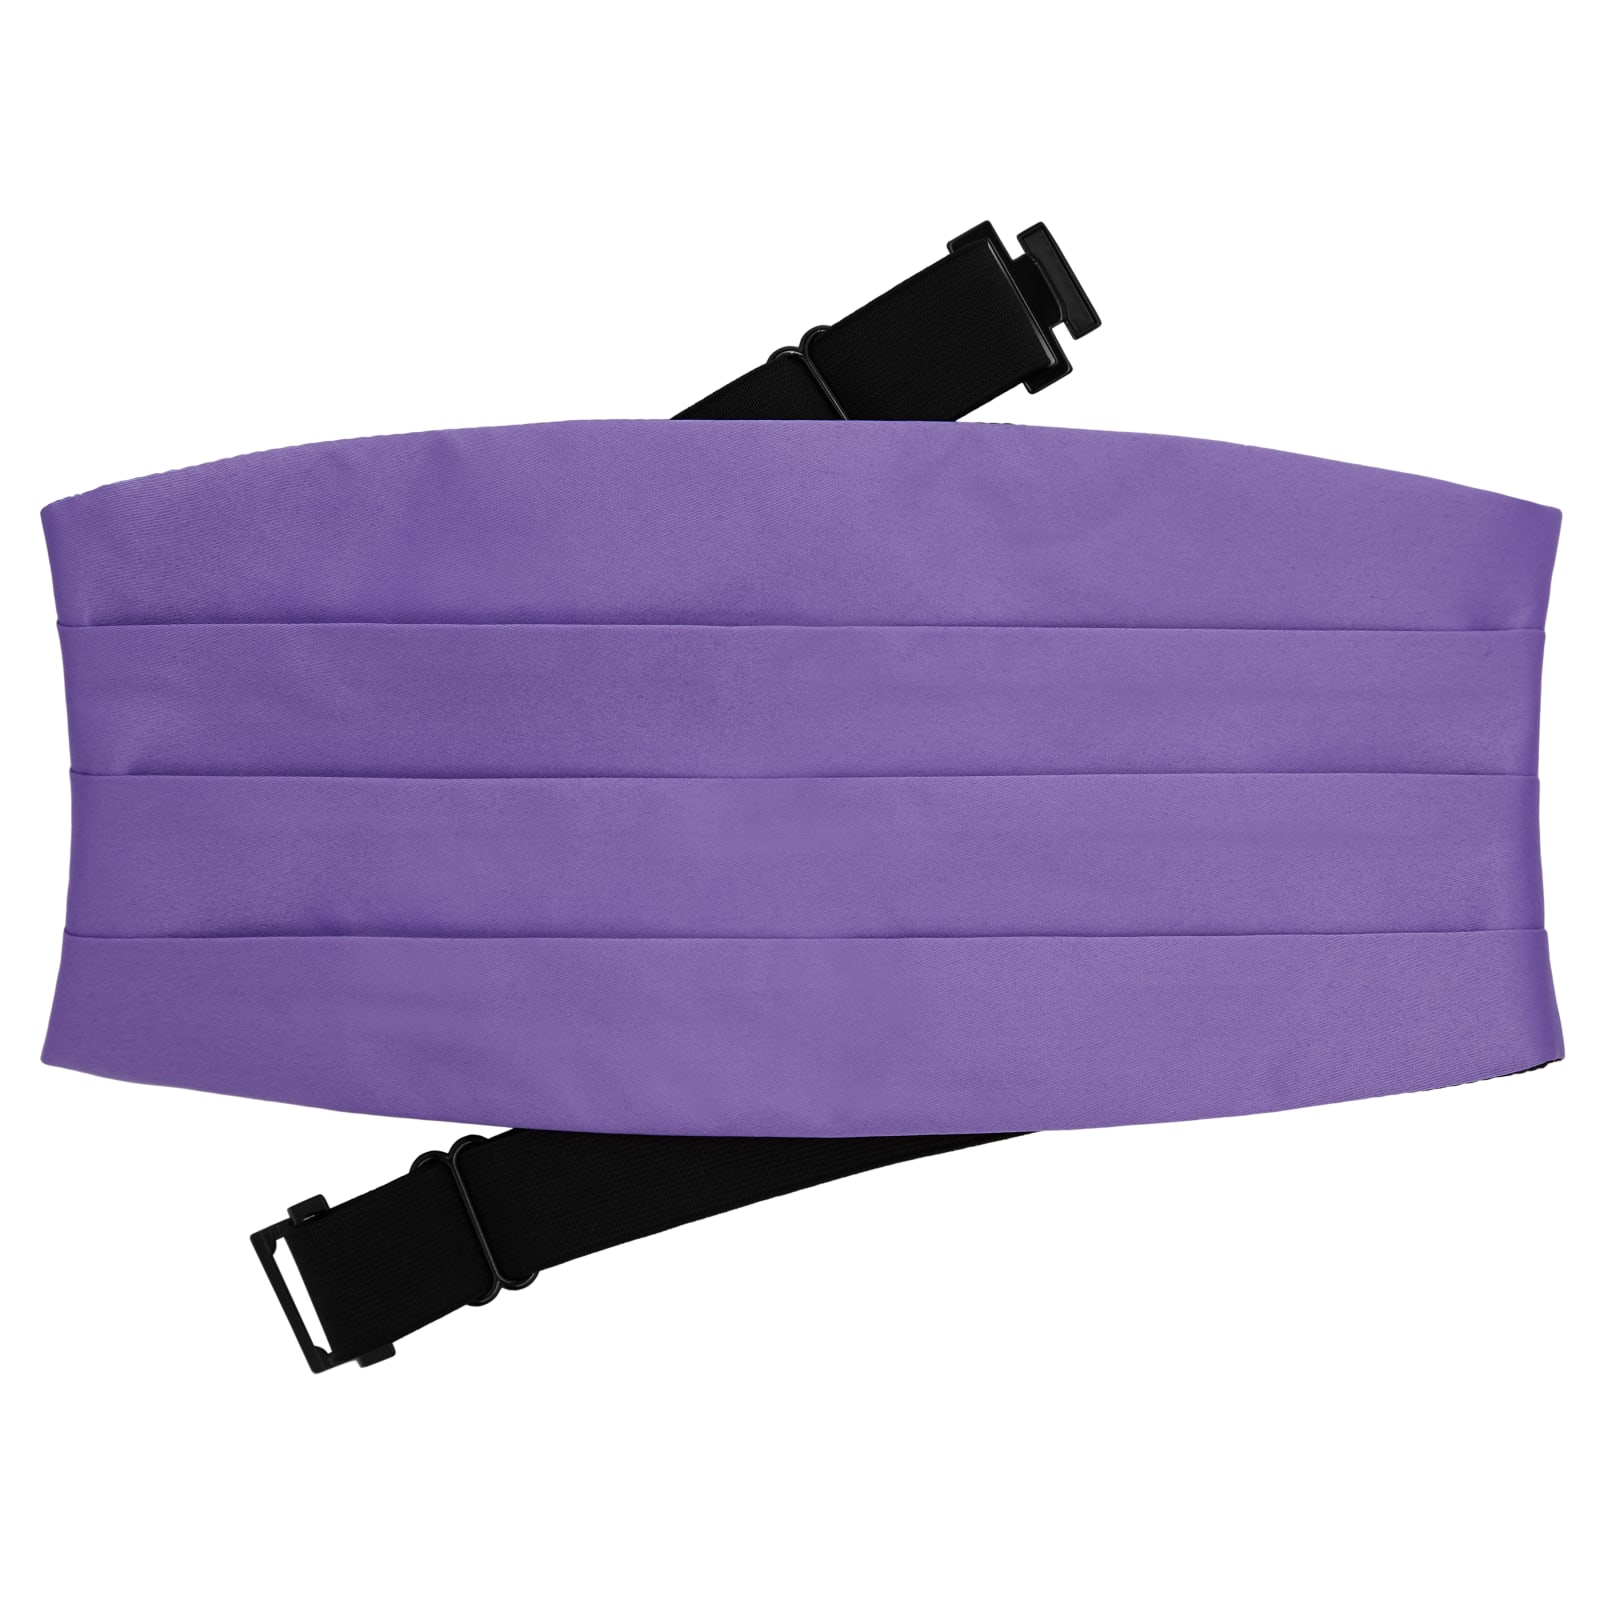 d27c7c31e2dbd Light Purple Basic Cummerbund | TND Basics | In stock!